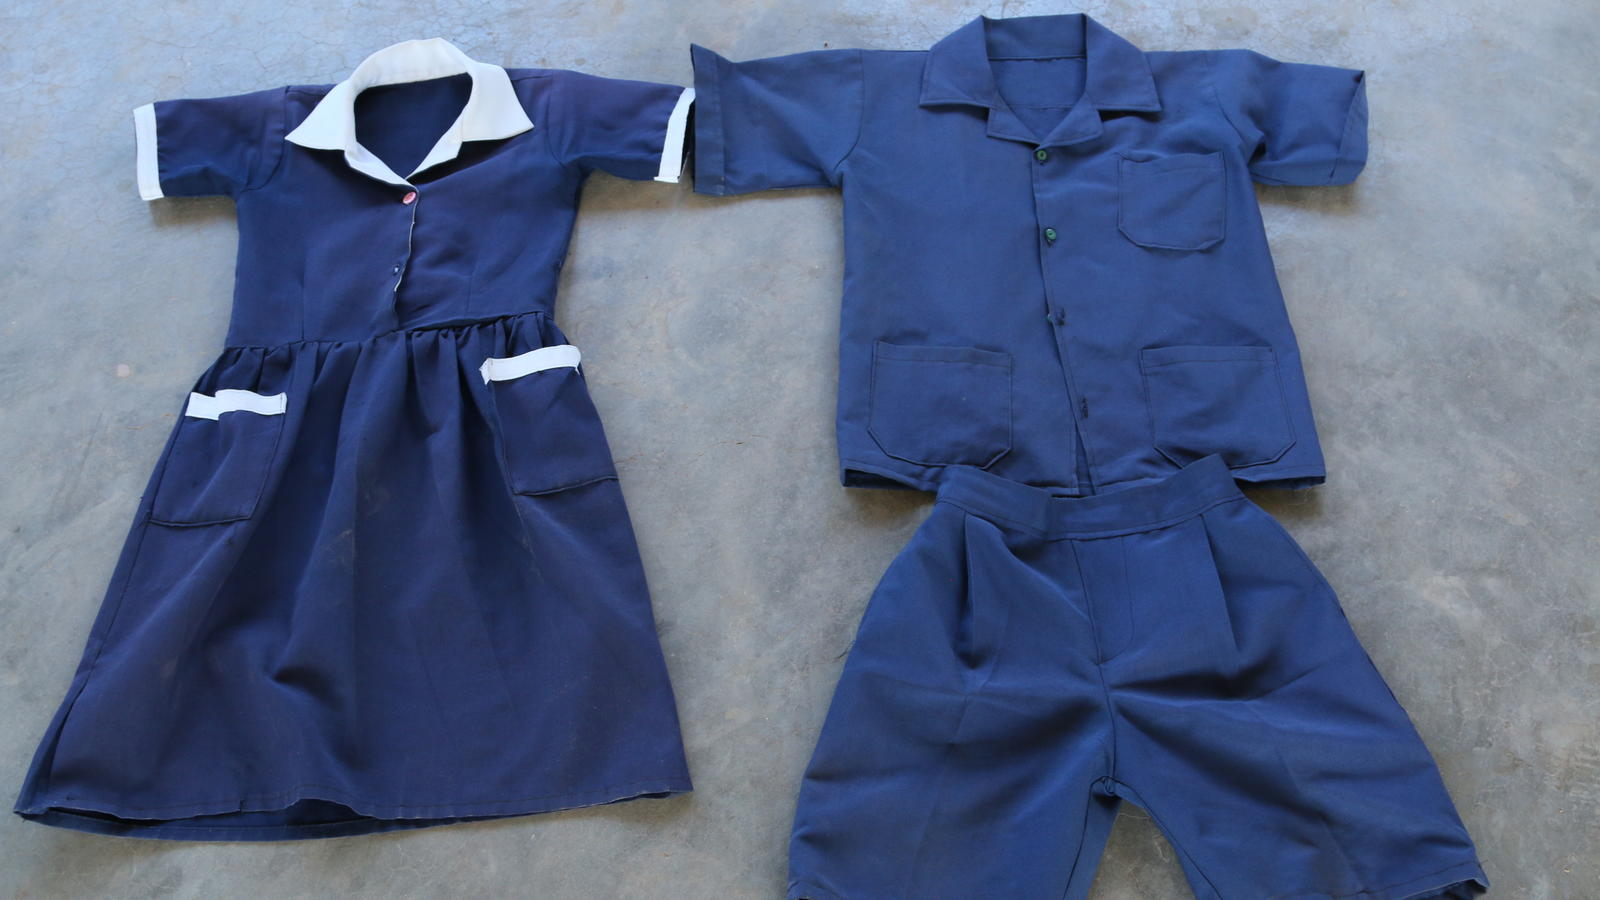 School uniforms at Katapazi School, Zambia.